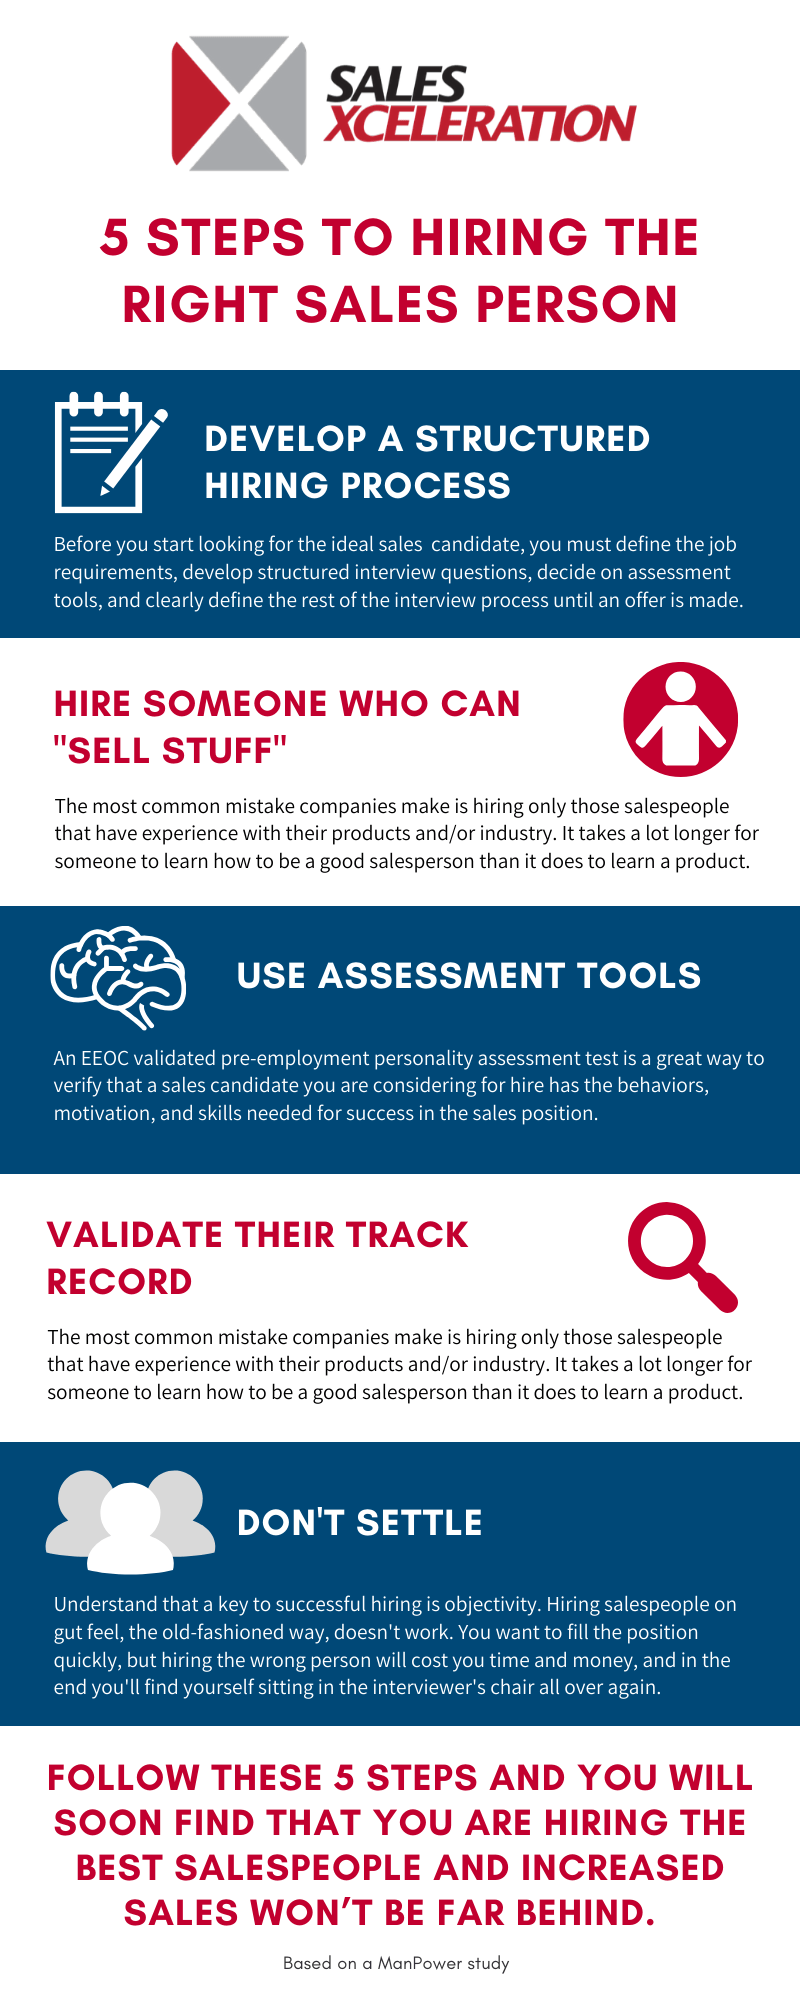 5 Steps to hiring the right sales person